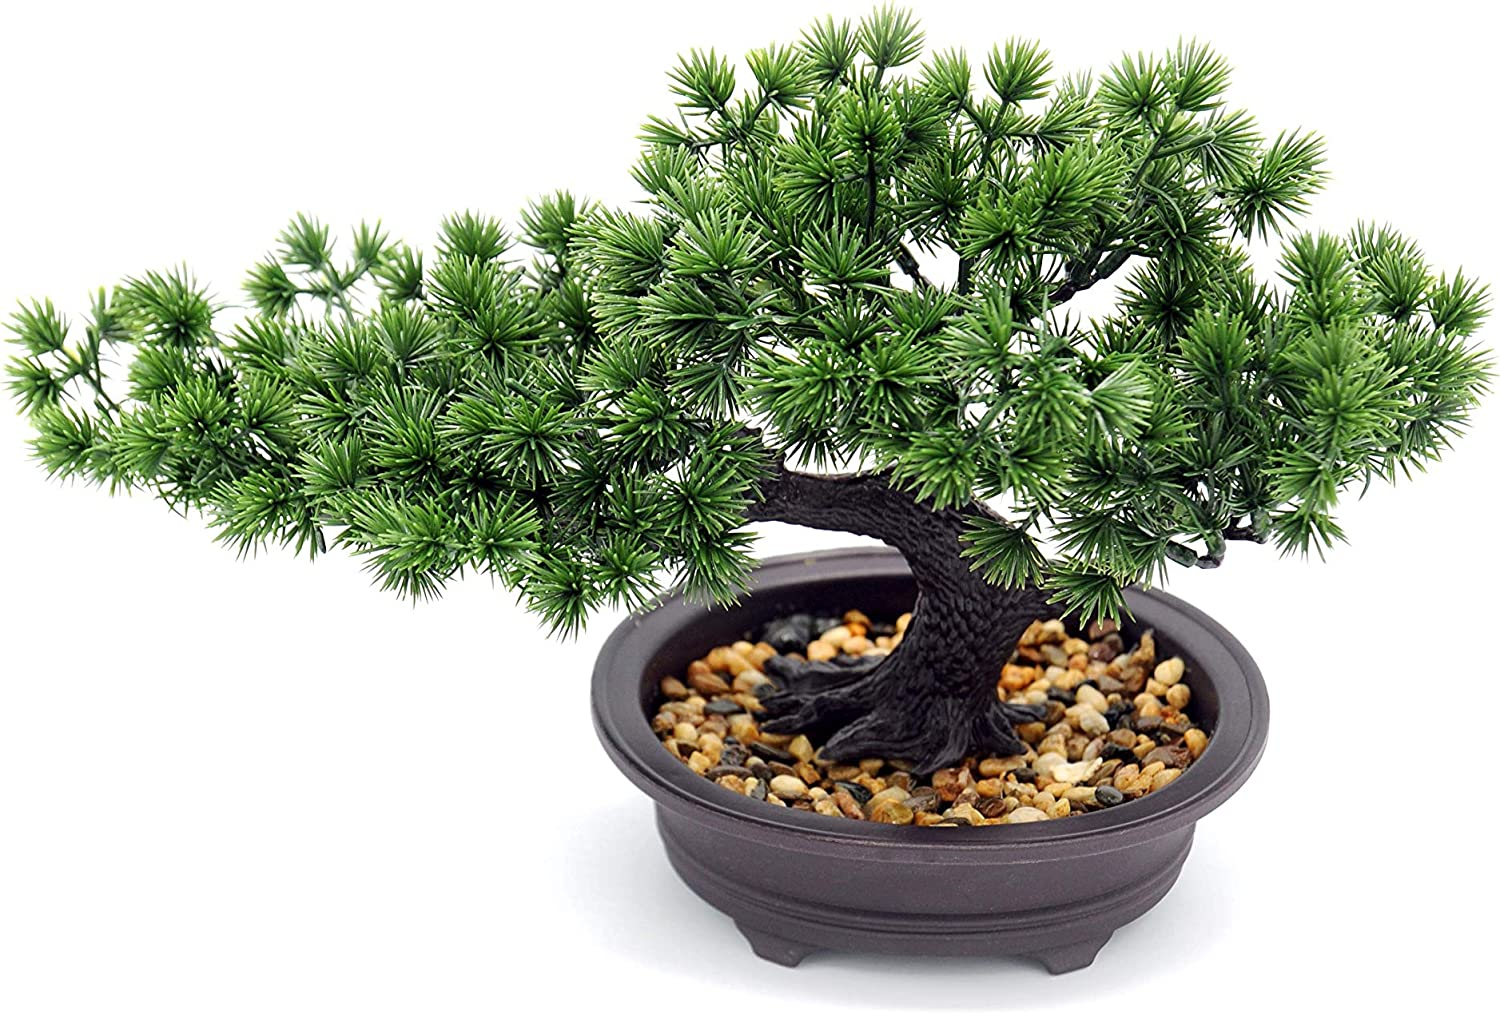 Artificial Plants Bonsai Pine Tree, Artificial House Welcoming Pot Plants, Japanese Pine Desktop Display Simulation, Living Room, Zen Garden Decoration Decor (Zen)